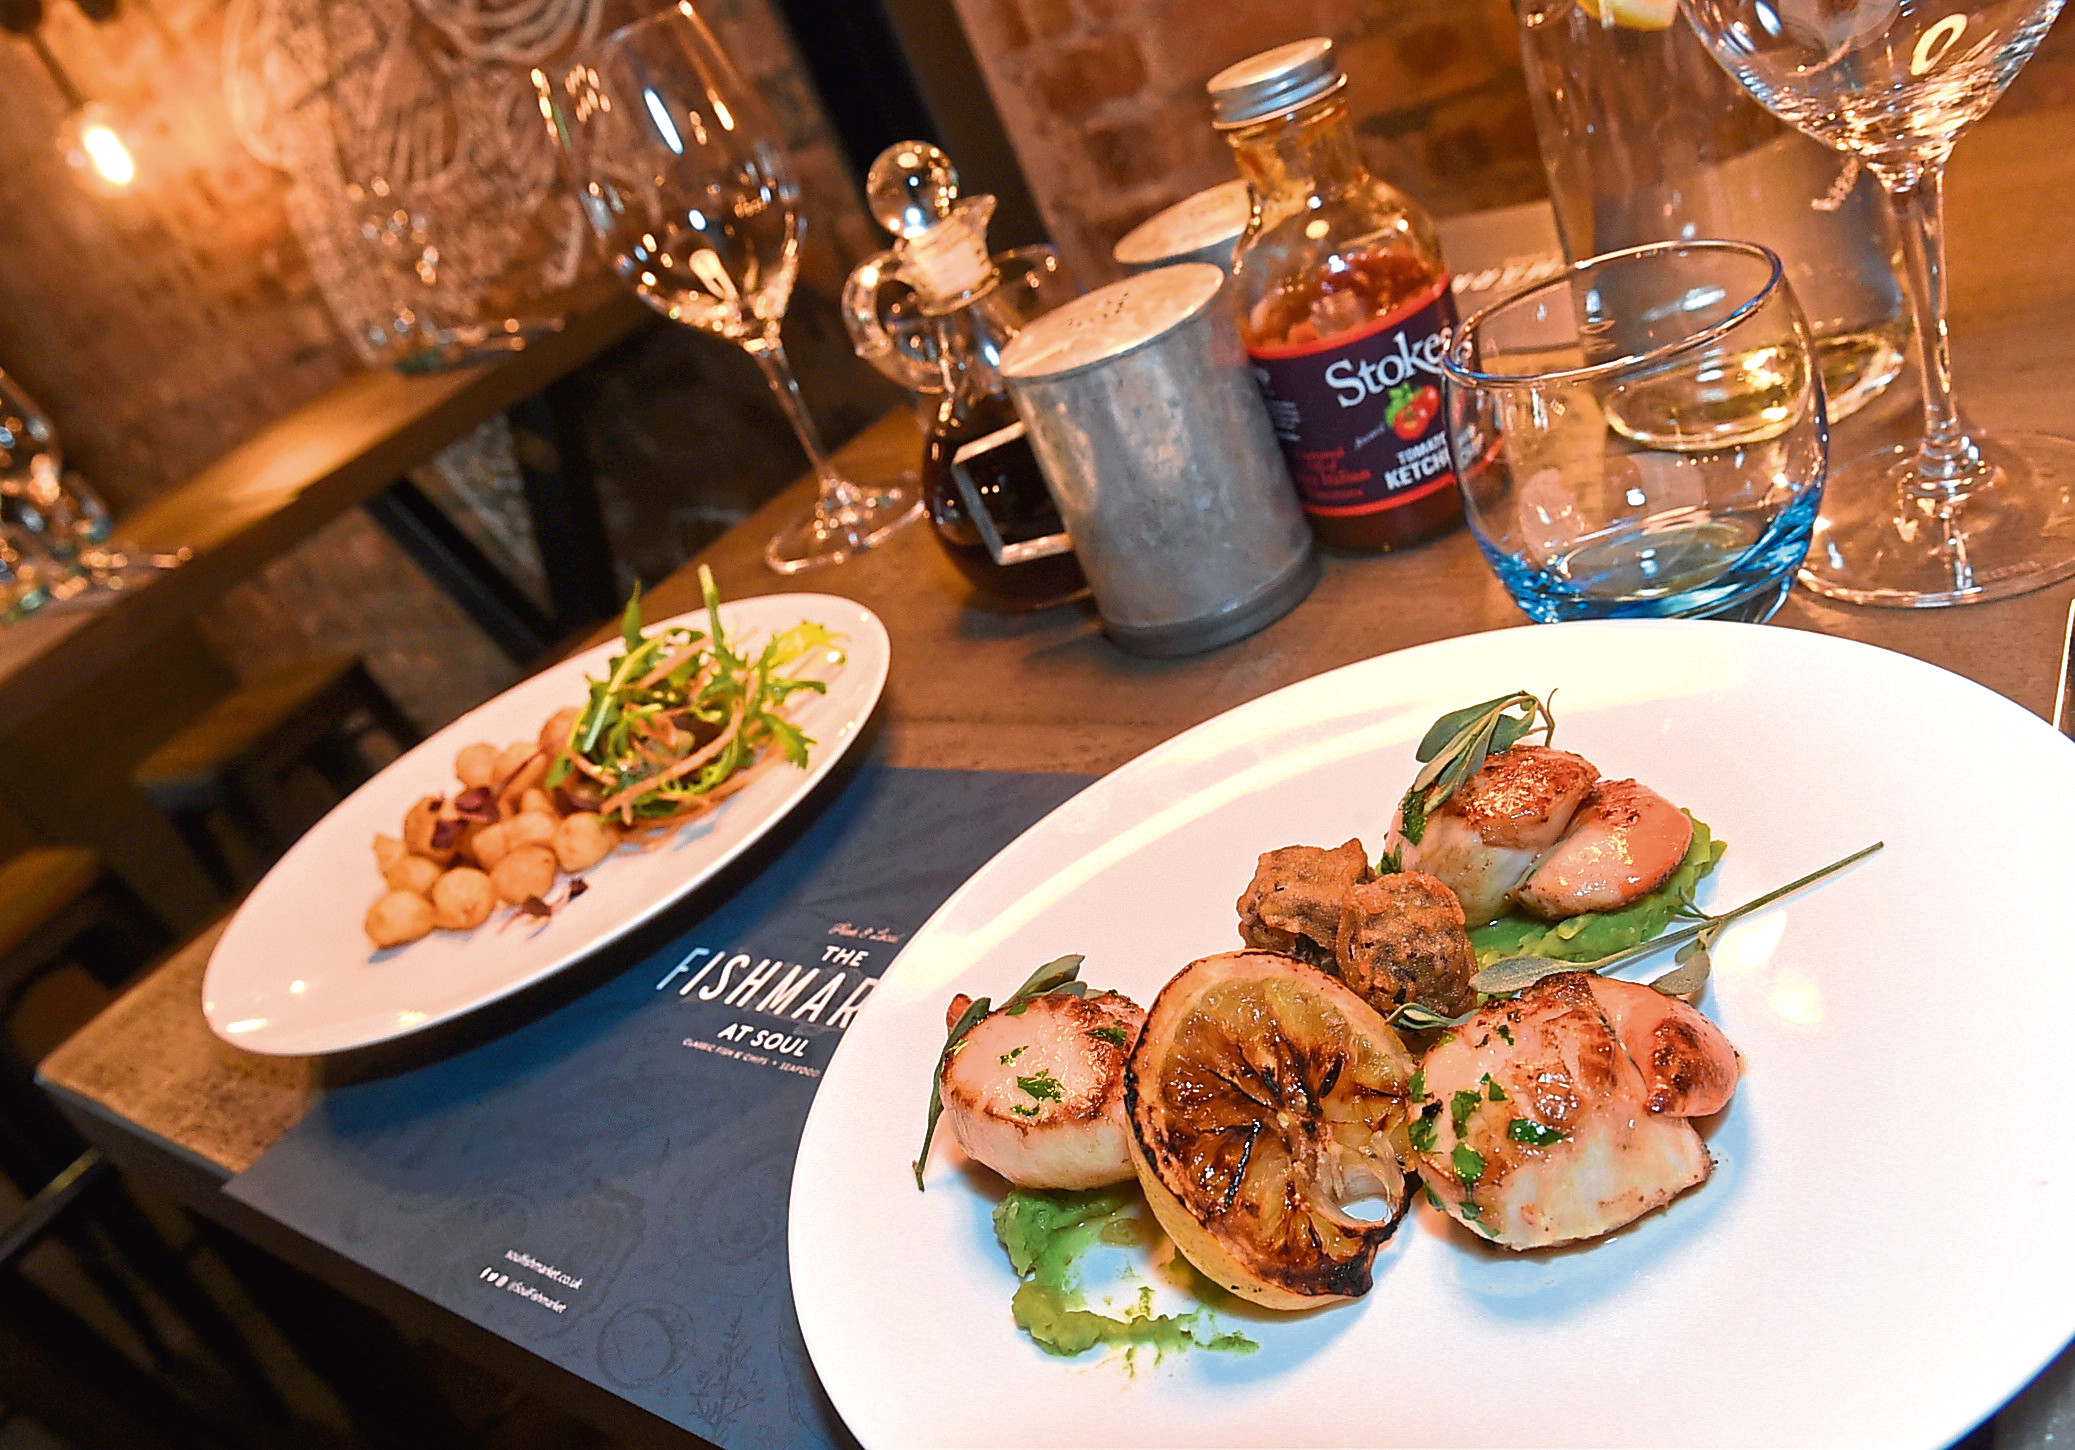 Scallops with pickled baby onions. Pictures by Jim Irvine